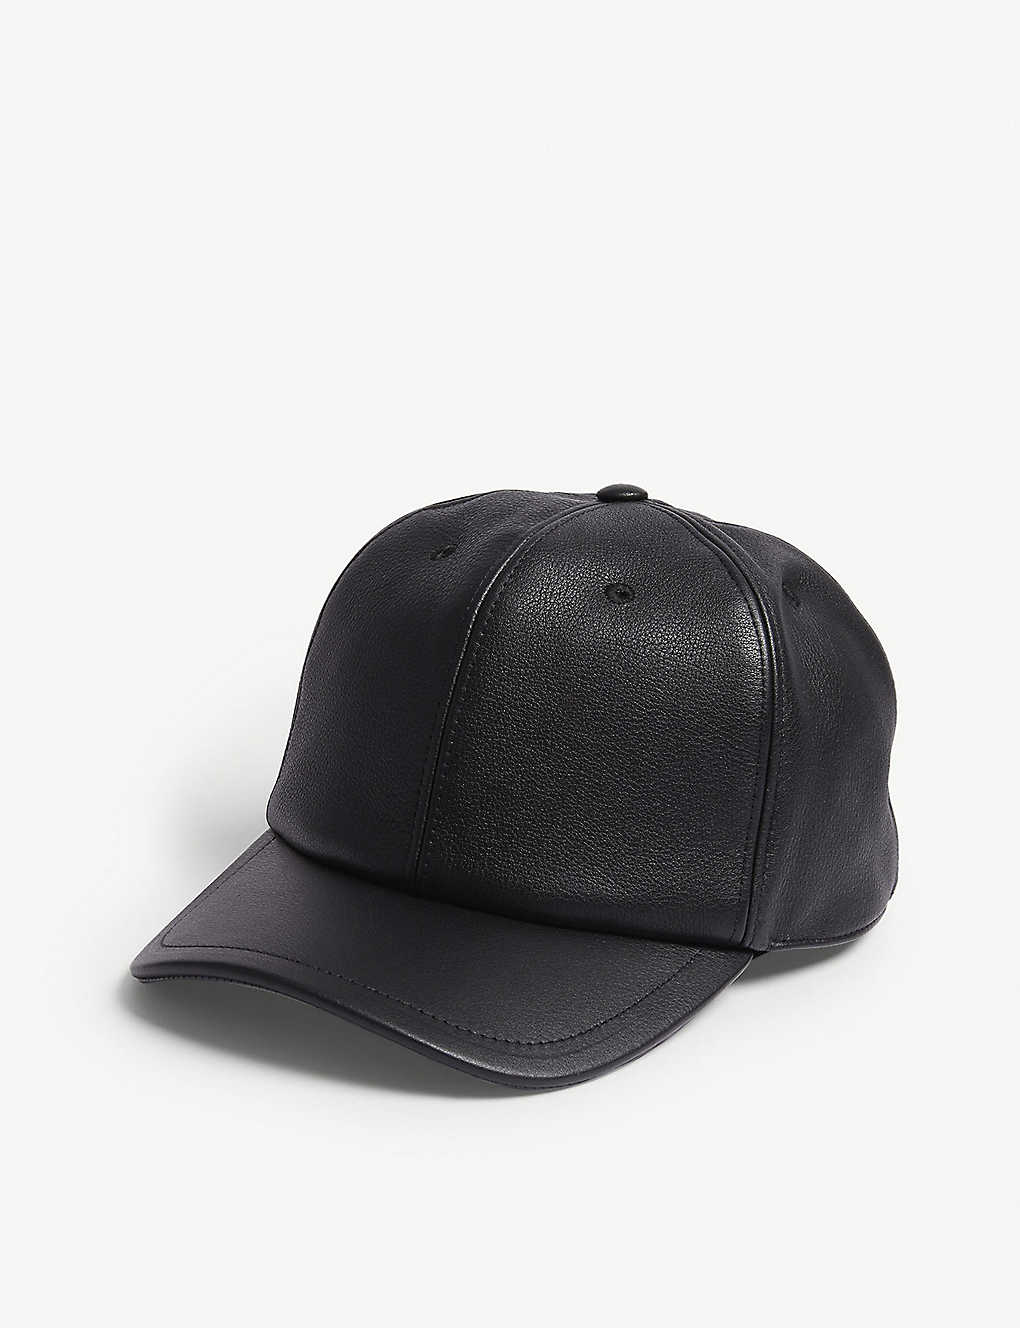 GIVENCHY - Address logo leather cap  df4b641f783